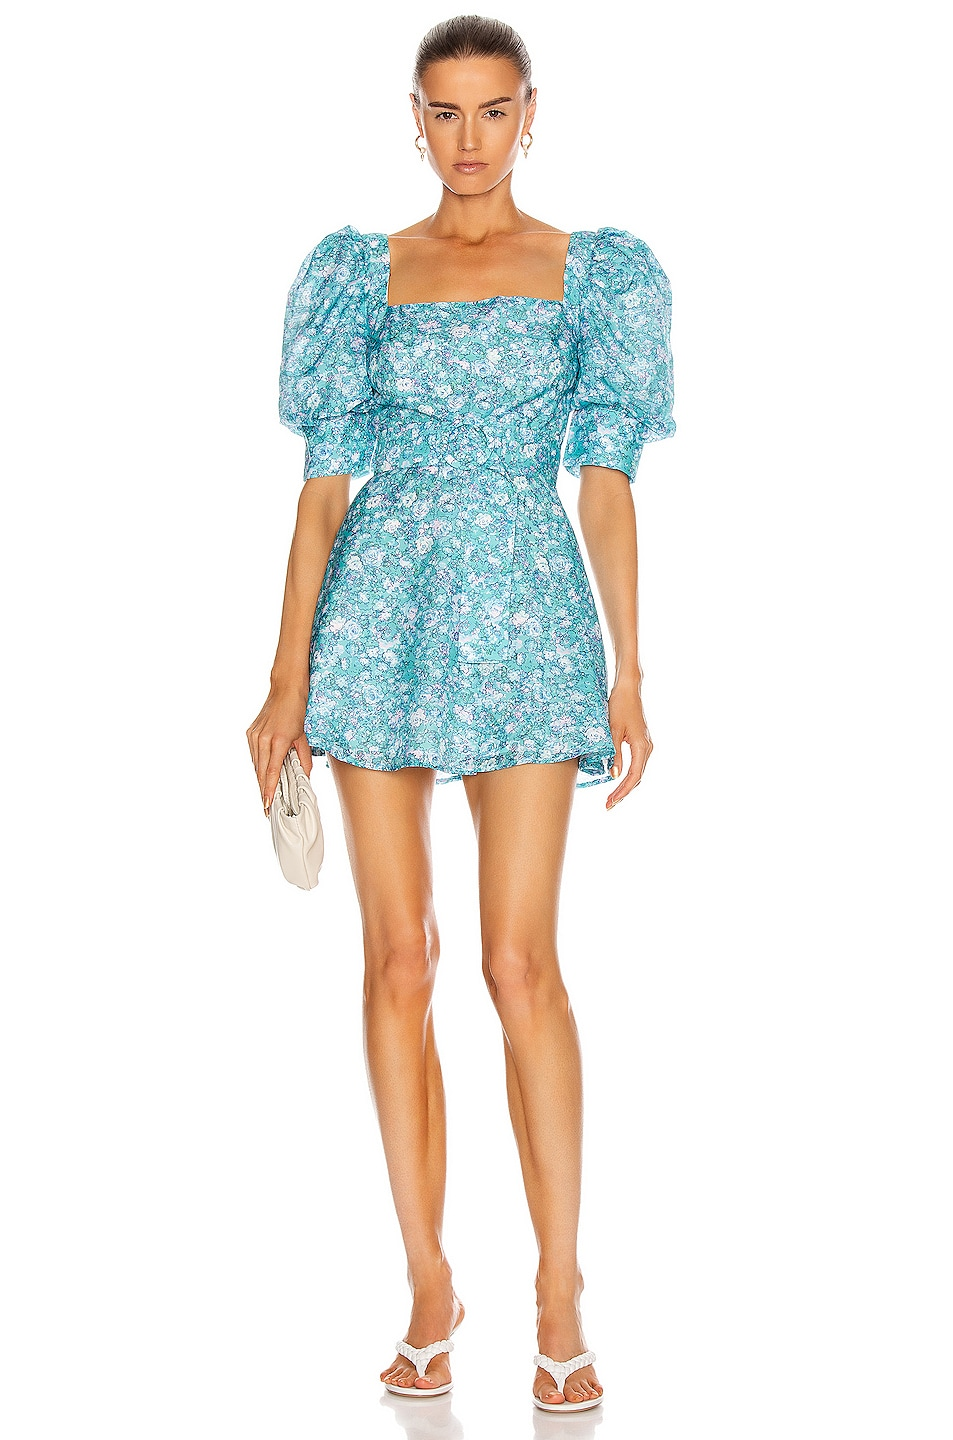 Image 1 of Atoir for FWRD Say Something Dress in Jade Floral